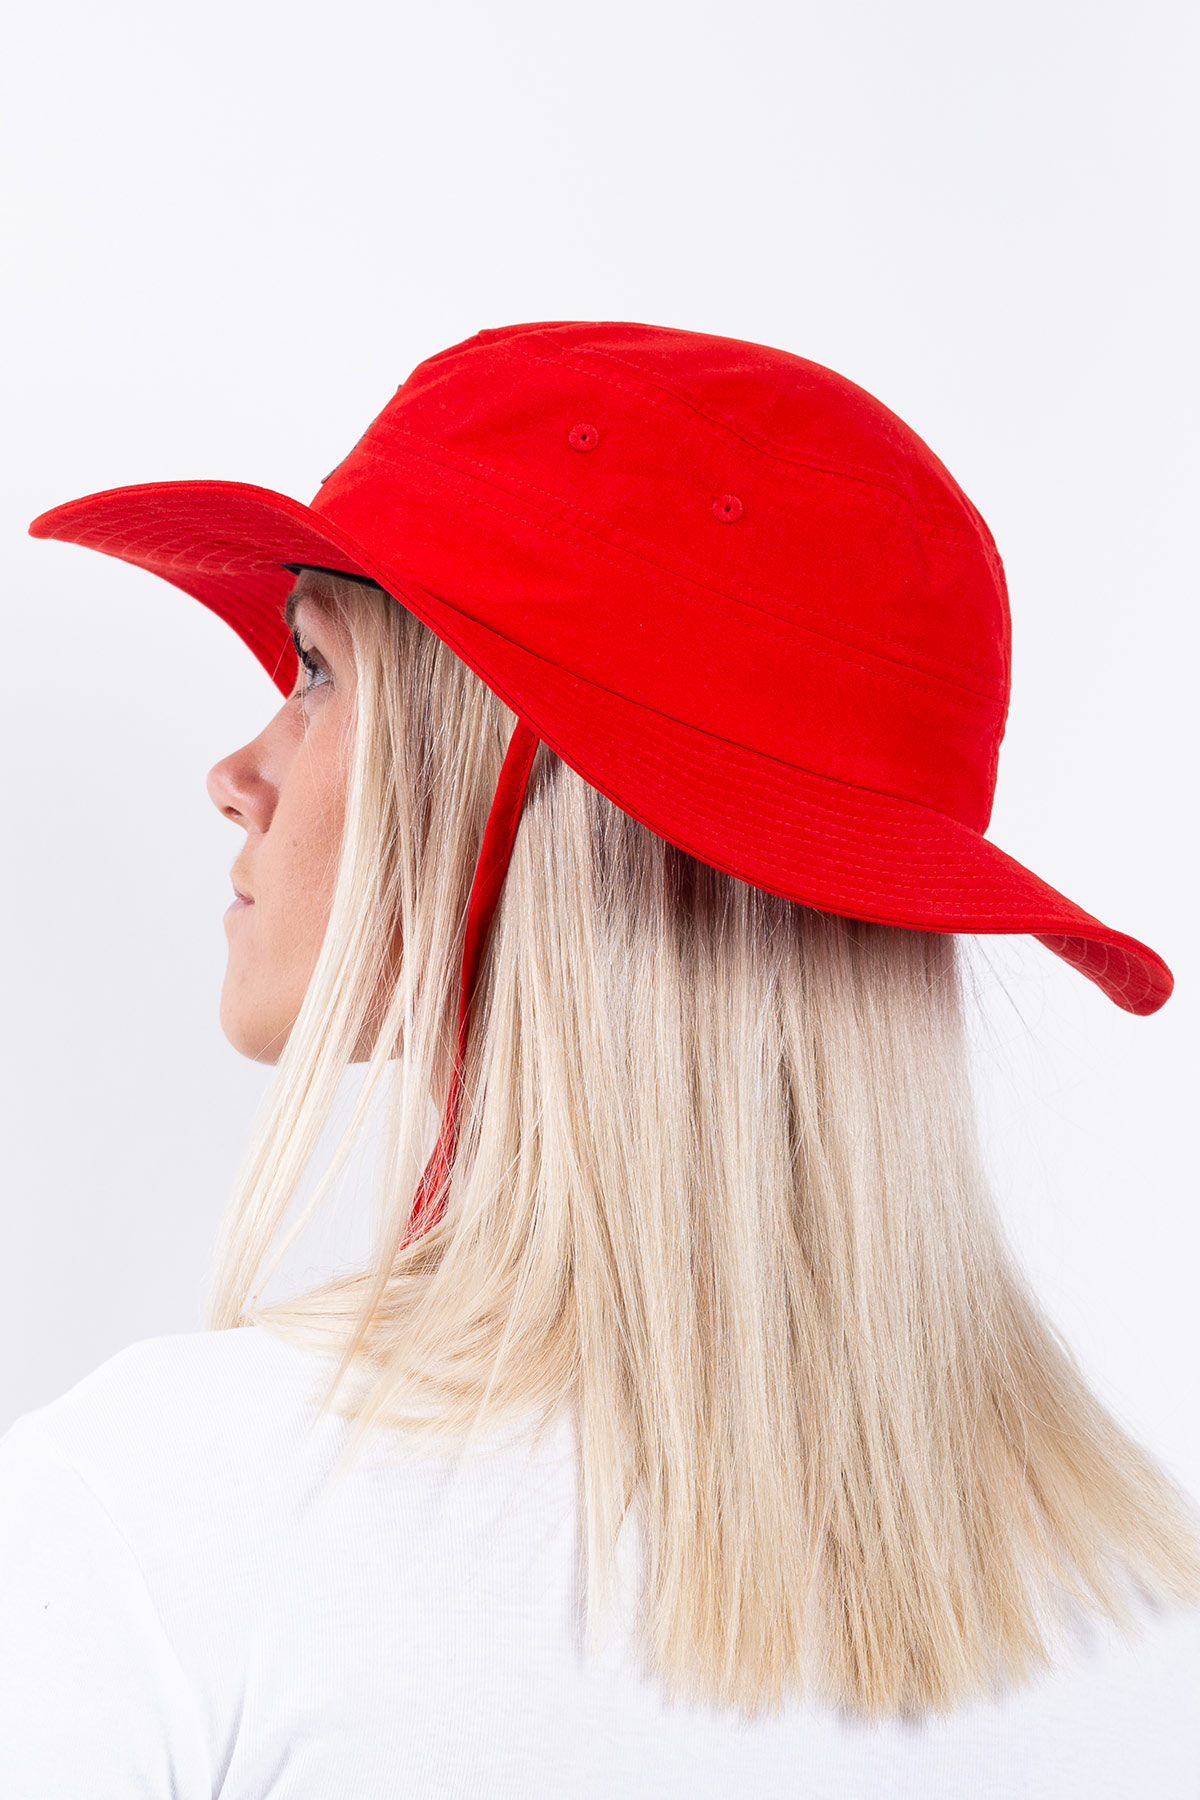 Headwear | Fishergirls' Friend Hat - Fierce Flamma | One Size